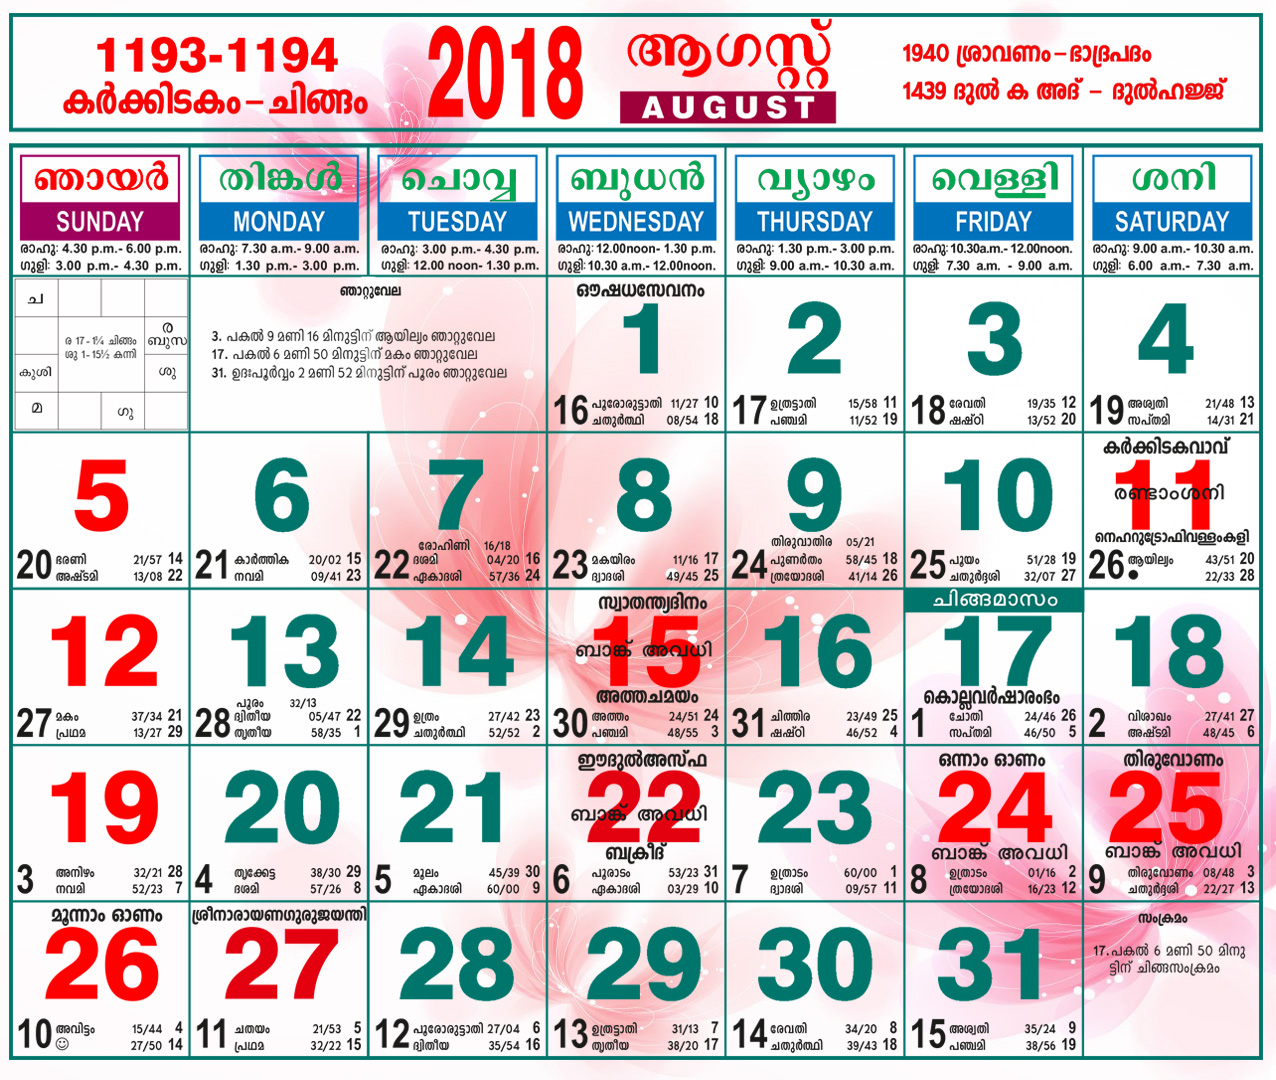 August 2018 Calendar Malayalam regarding October 2018 Calendar Malayalam